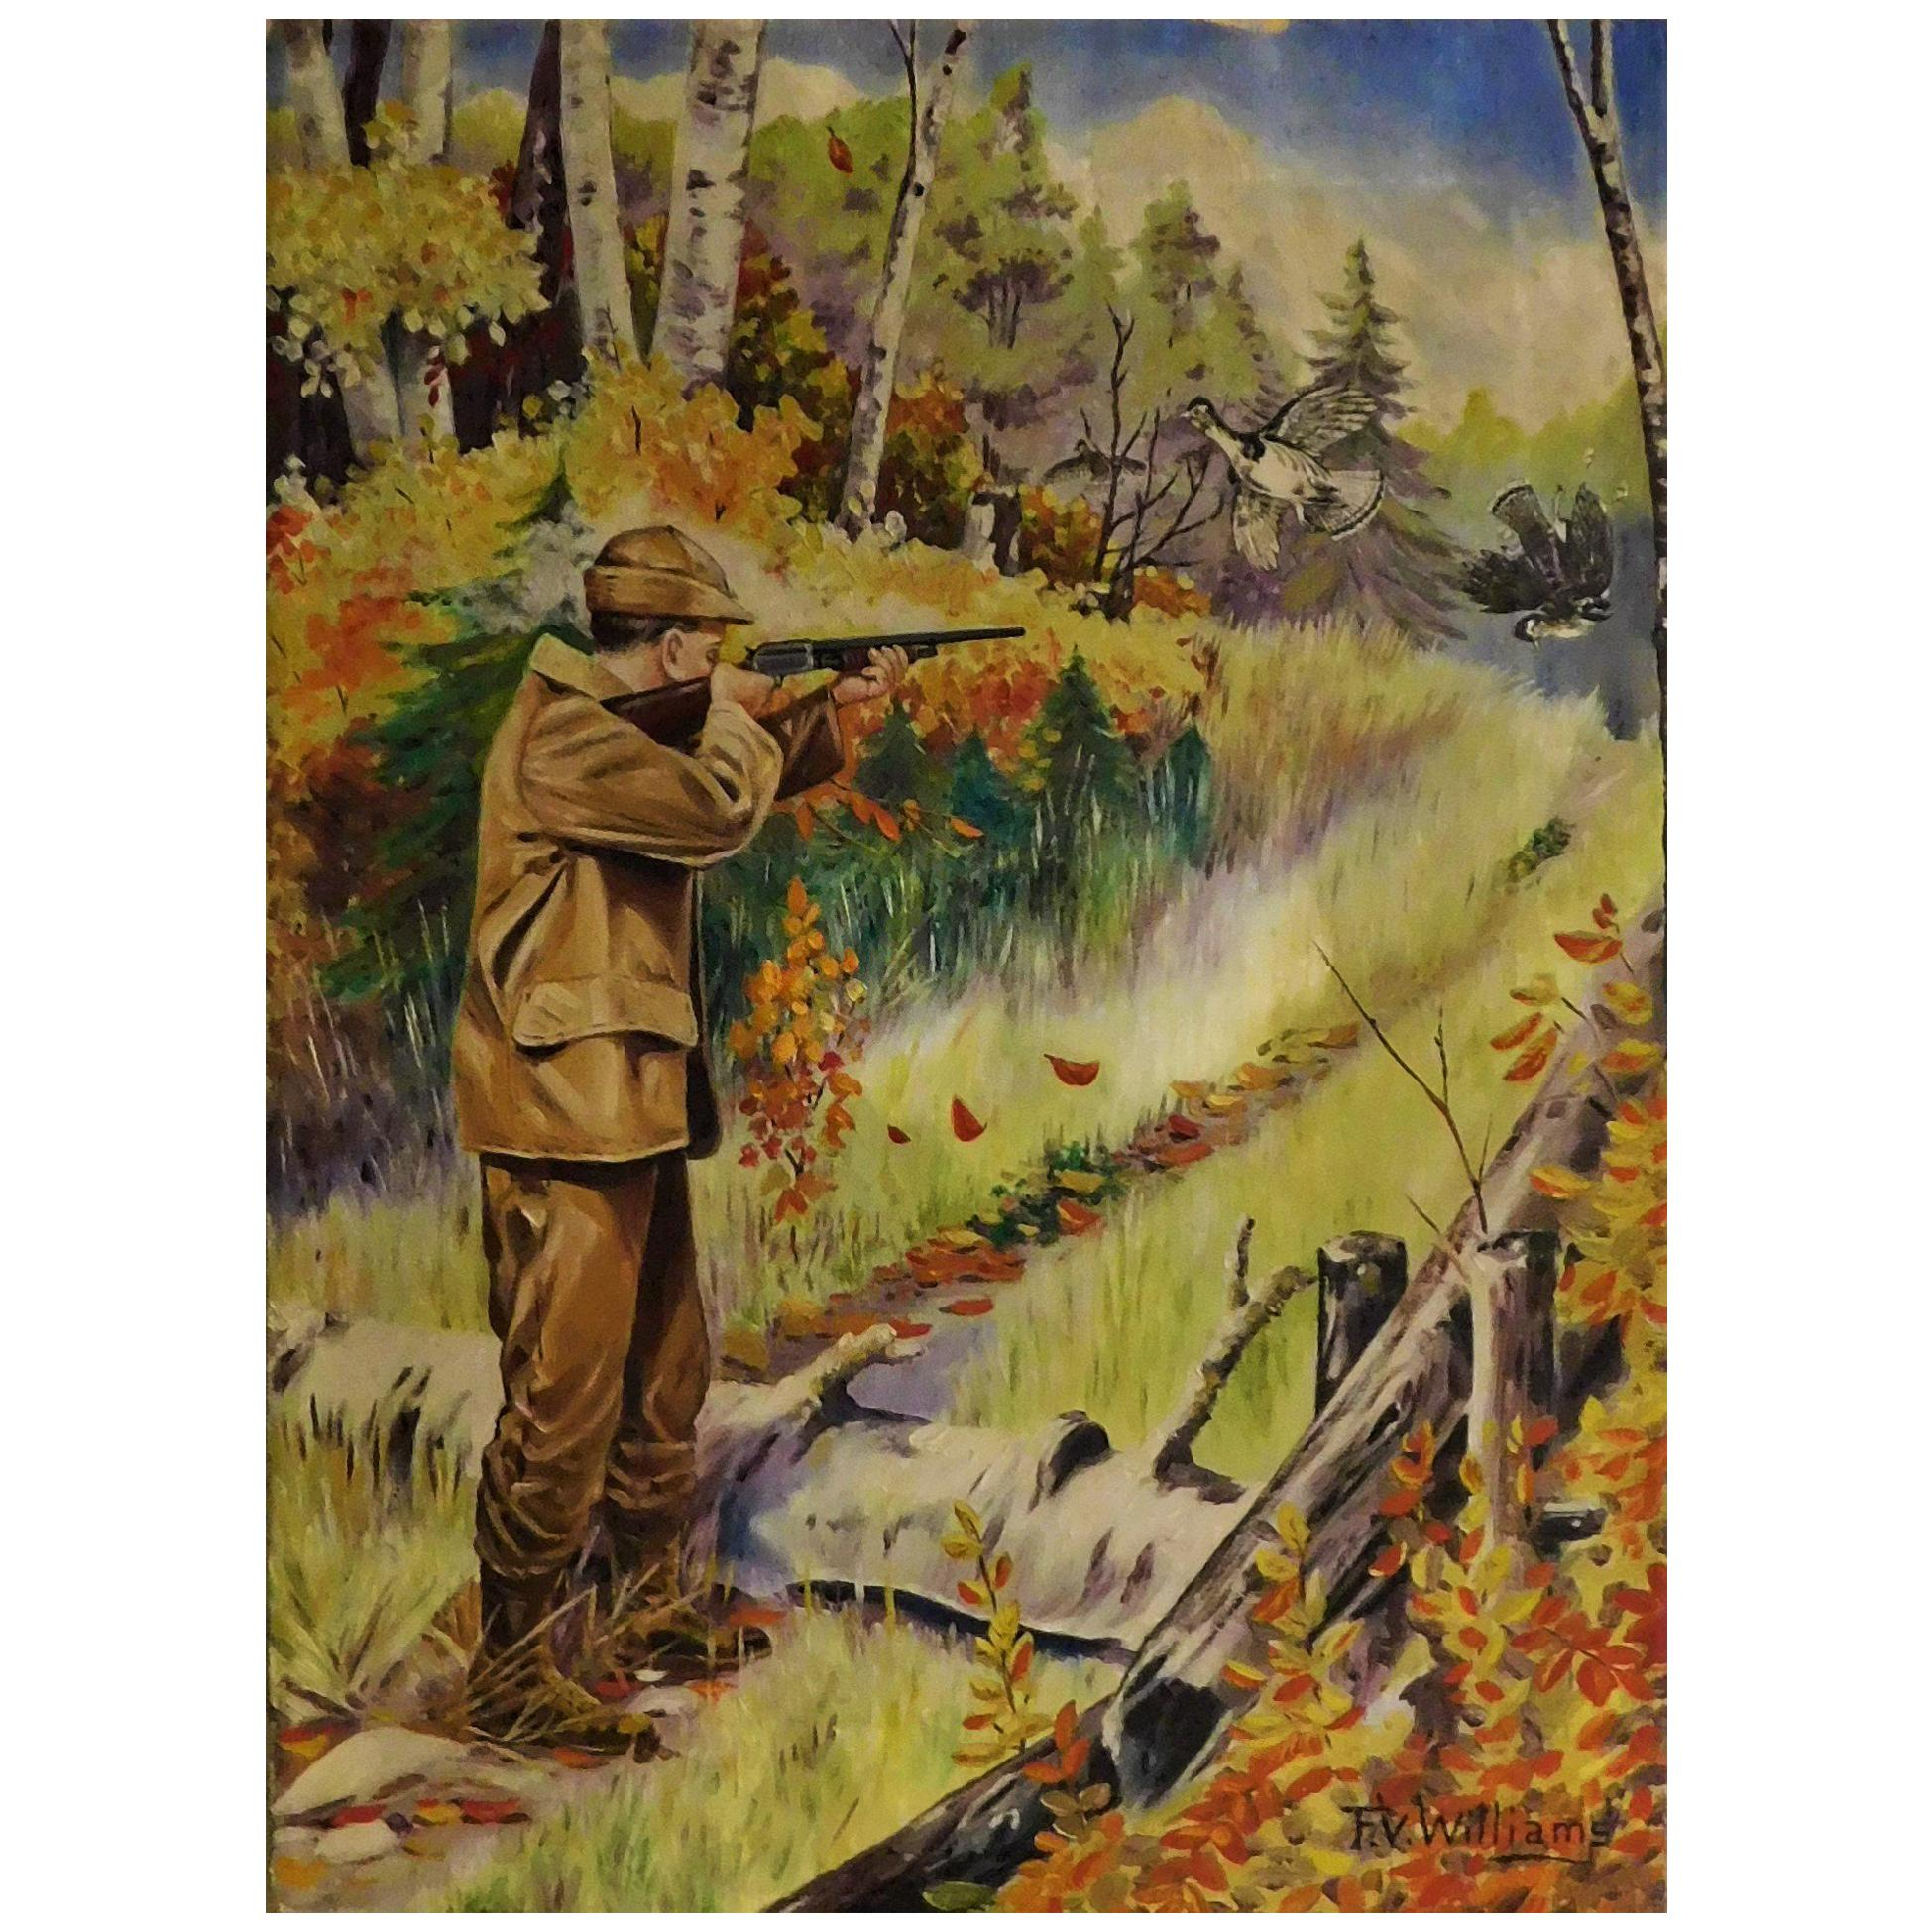 F.V. Williams Oil on Canvas Pheasant Hunting Painting